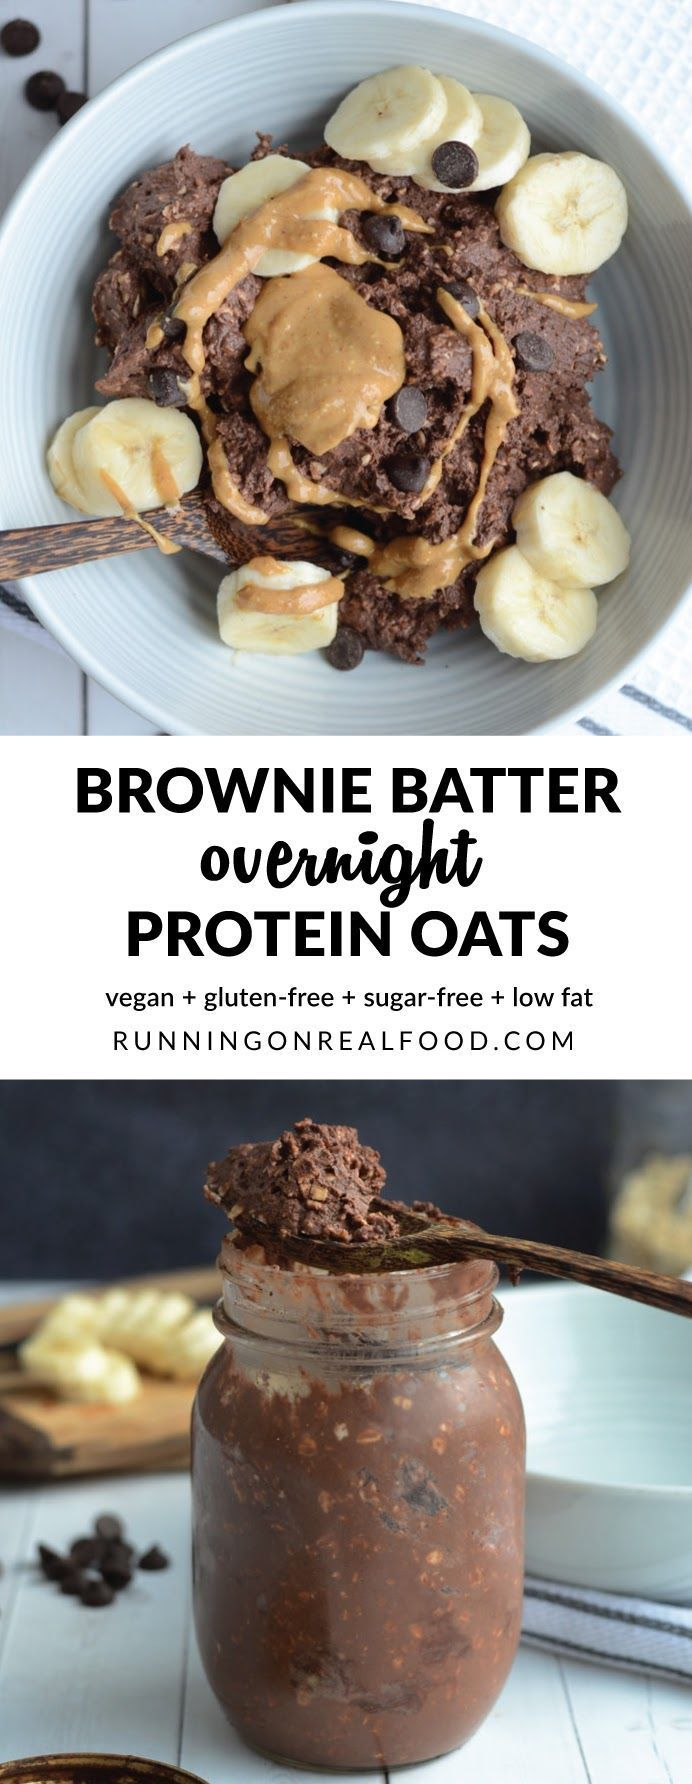 Batter Overnight Protein Oats Prep these chocolate-packed, thick and creamy, brownie batter overnight protein oats in just 1 minute and wake up to dessert for breakfast! Vegan, gluten-free, so easy!Prep these chocolate-packed, thick and creamy, brownie batter overnight protein oats in just 1 minute and wake up to dessert for breakfast! Ve...